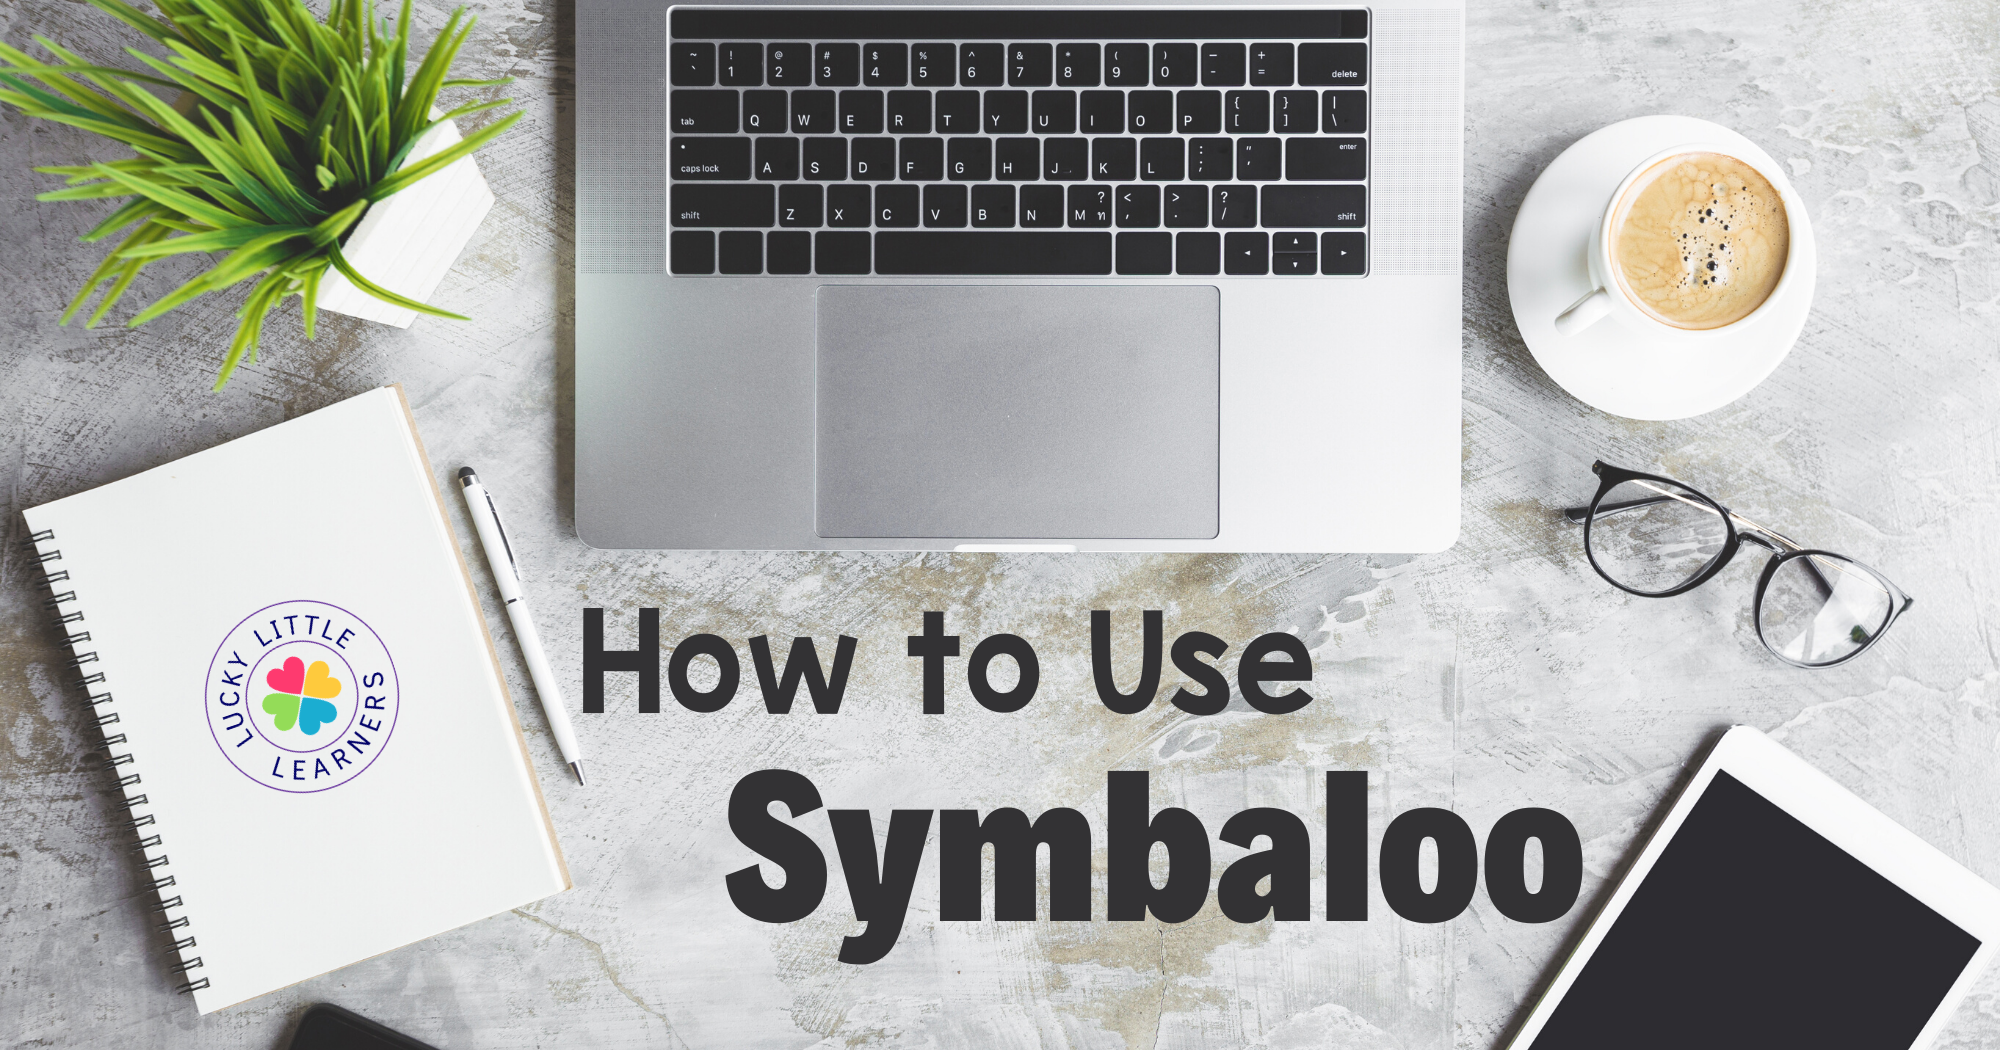 How to Use Symbaloo